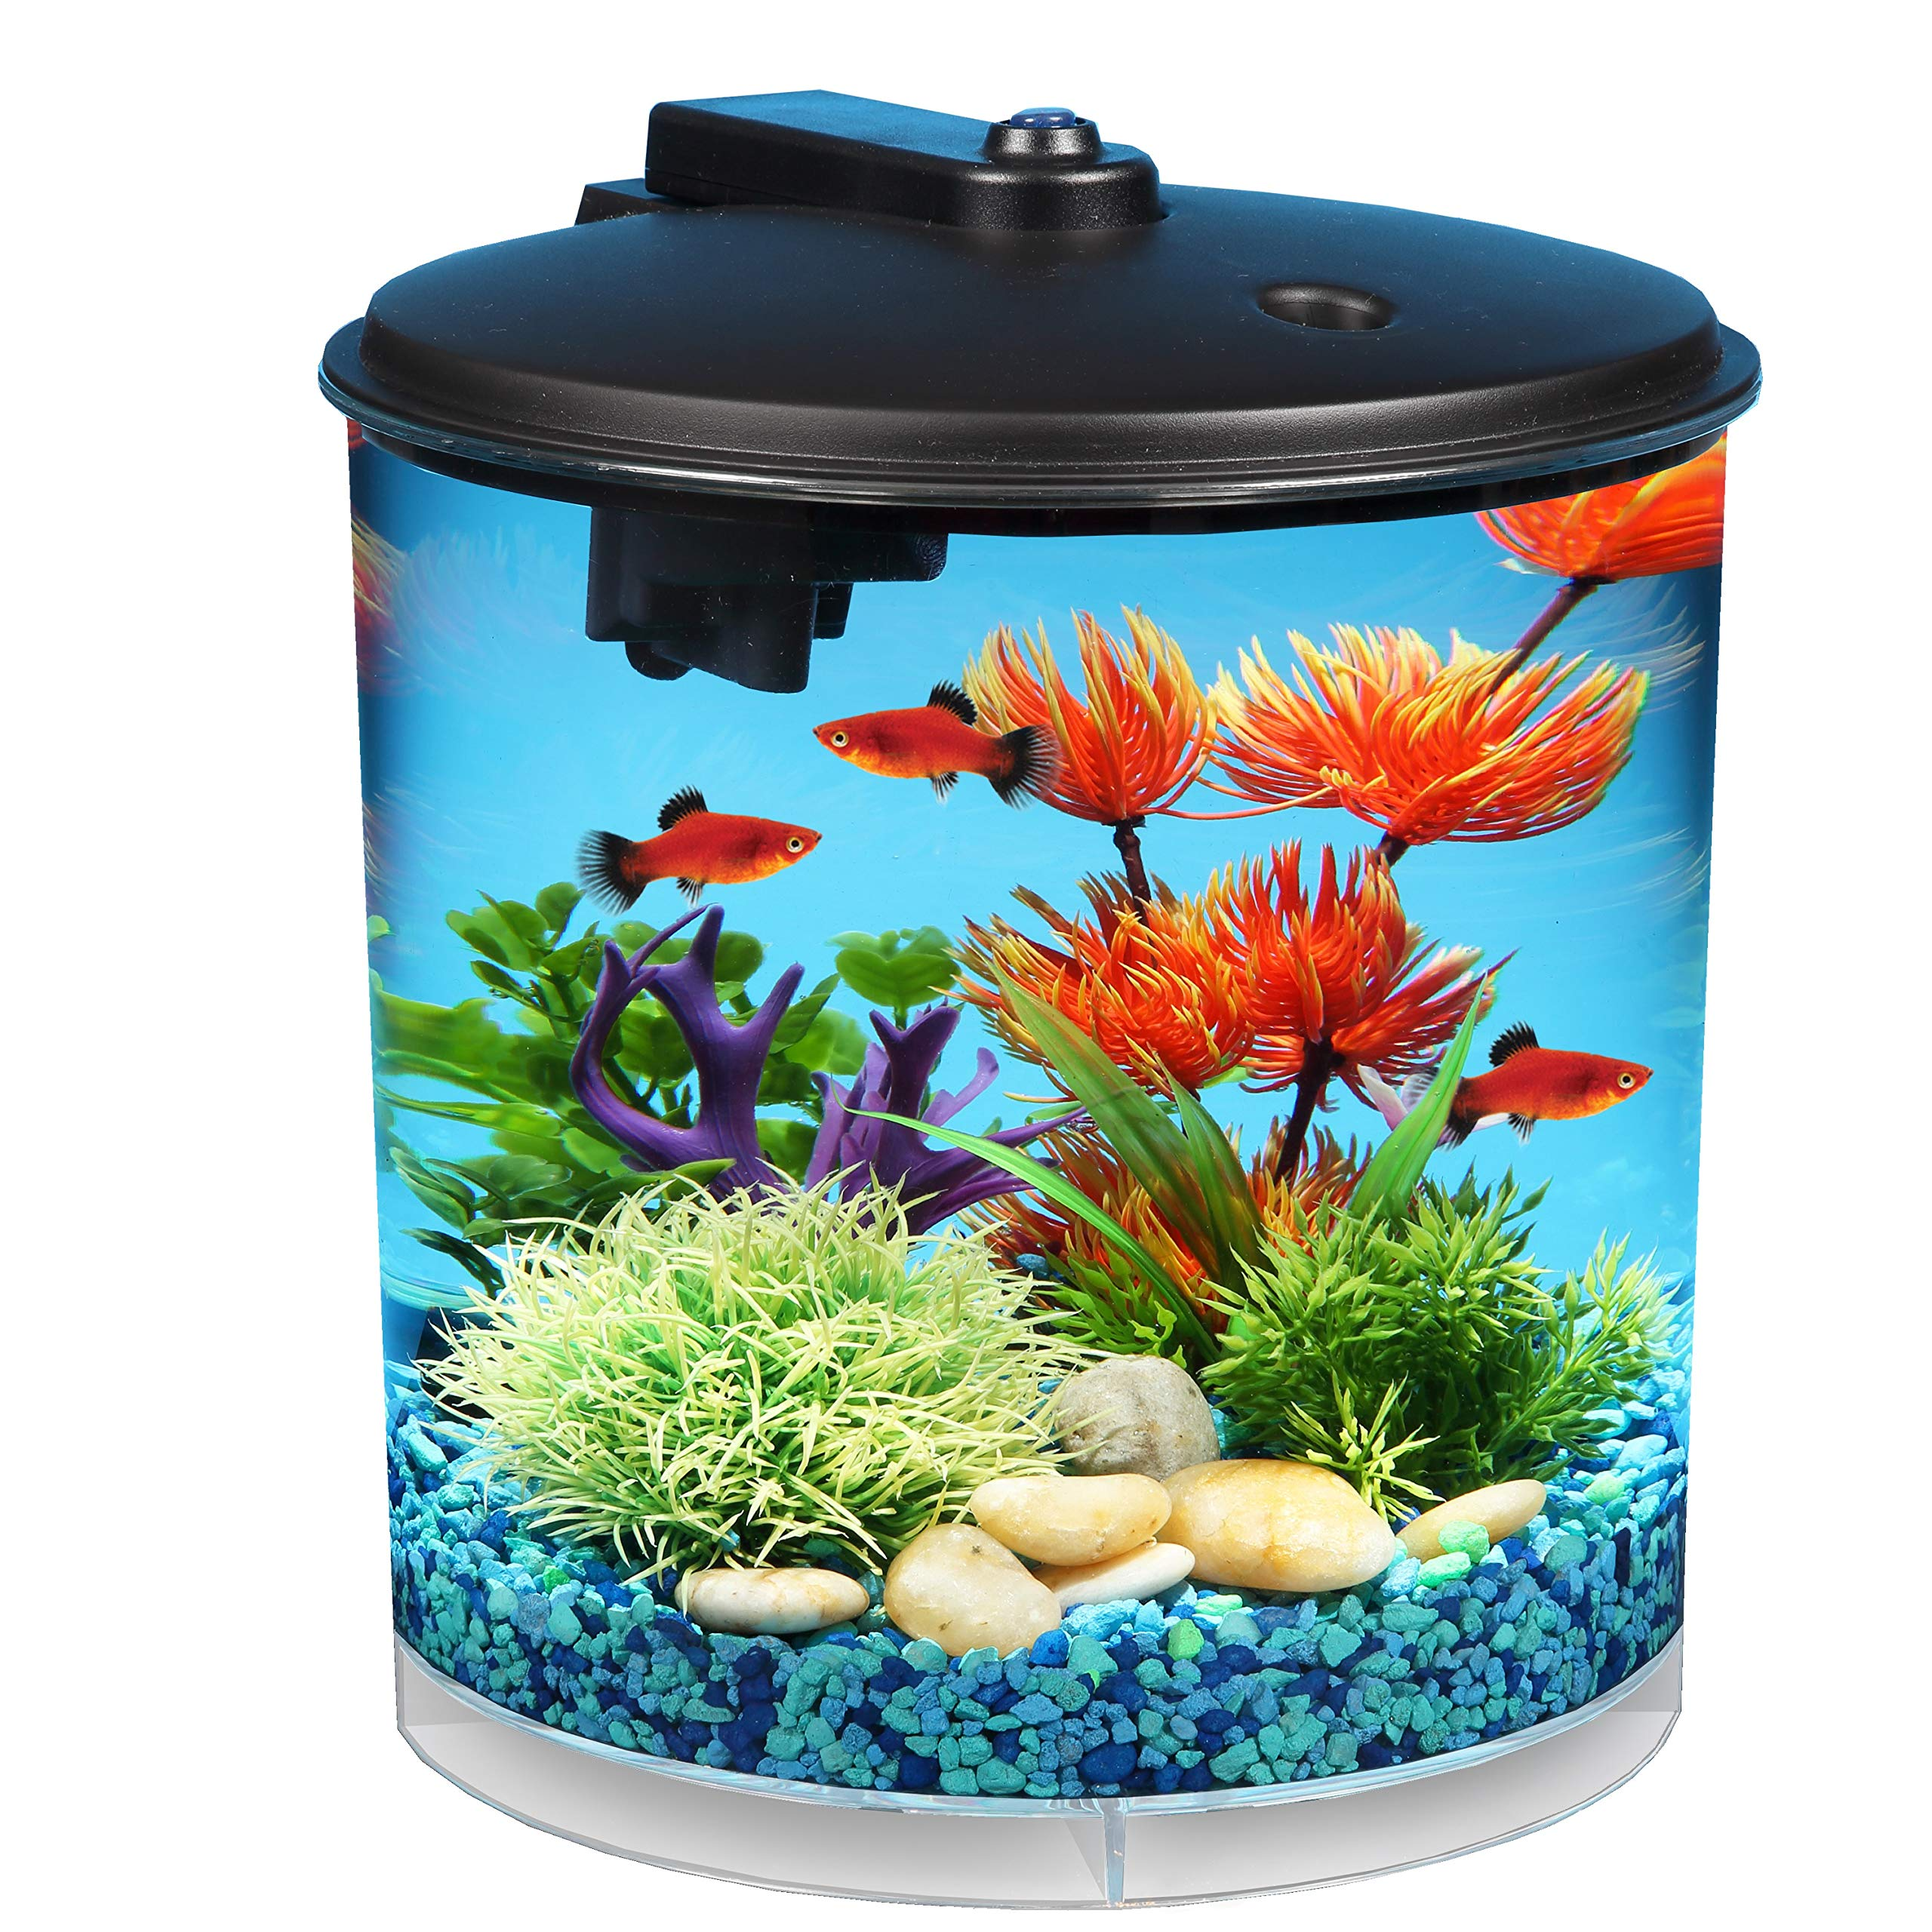 Koller Products AquaView 2-Gallon 360 Fish Tank with Power Filter and LED Lighting - AQ360-24C by Koller Products